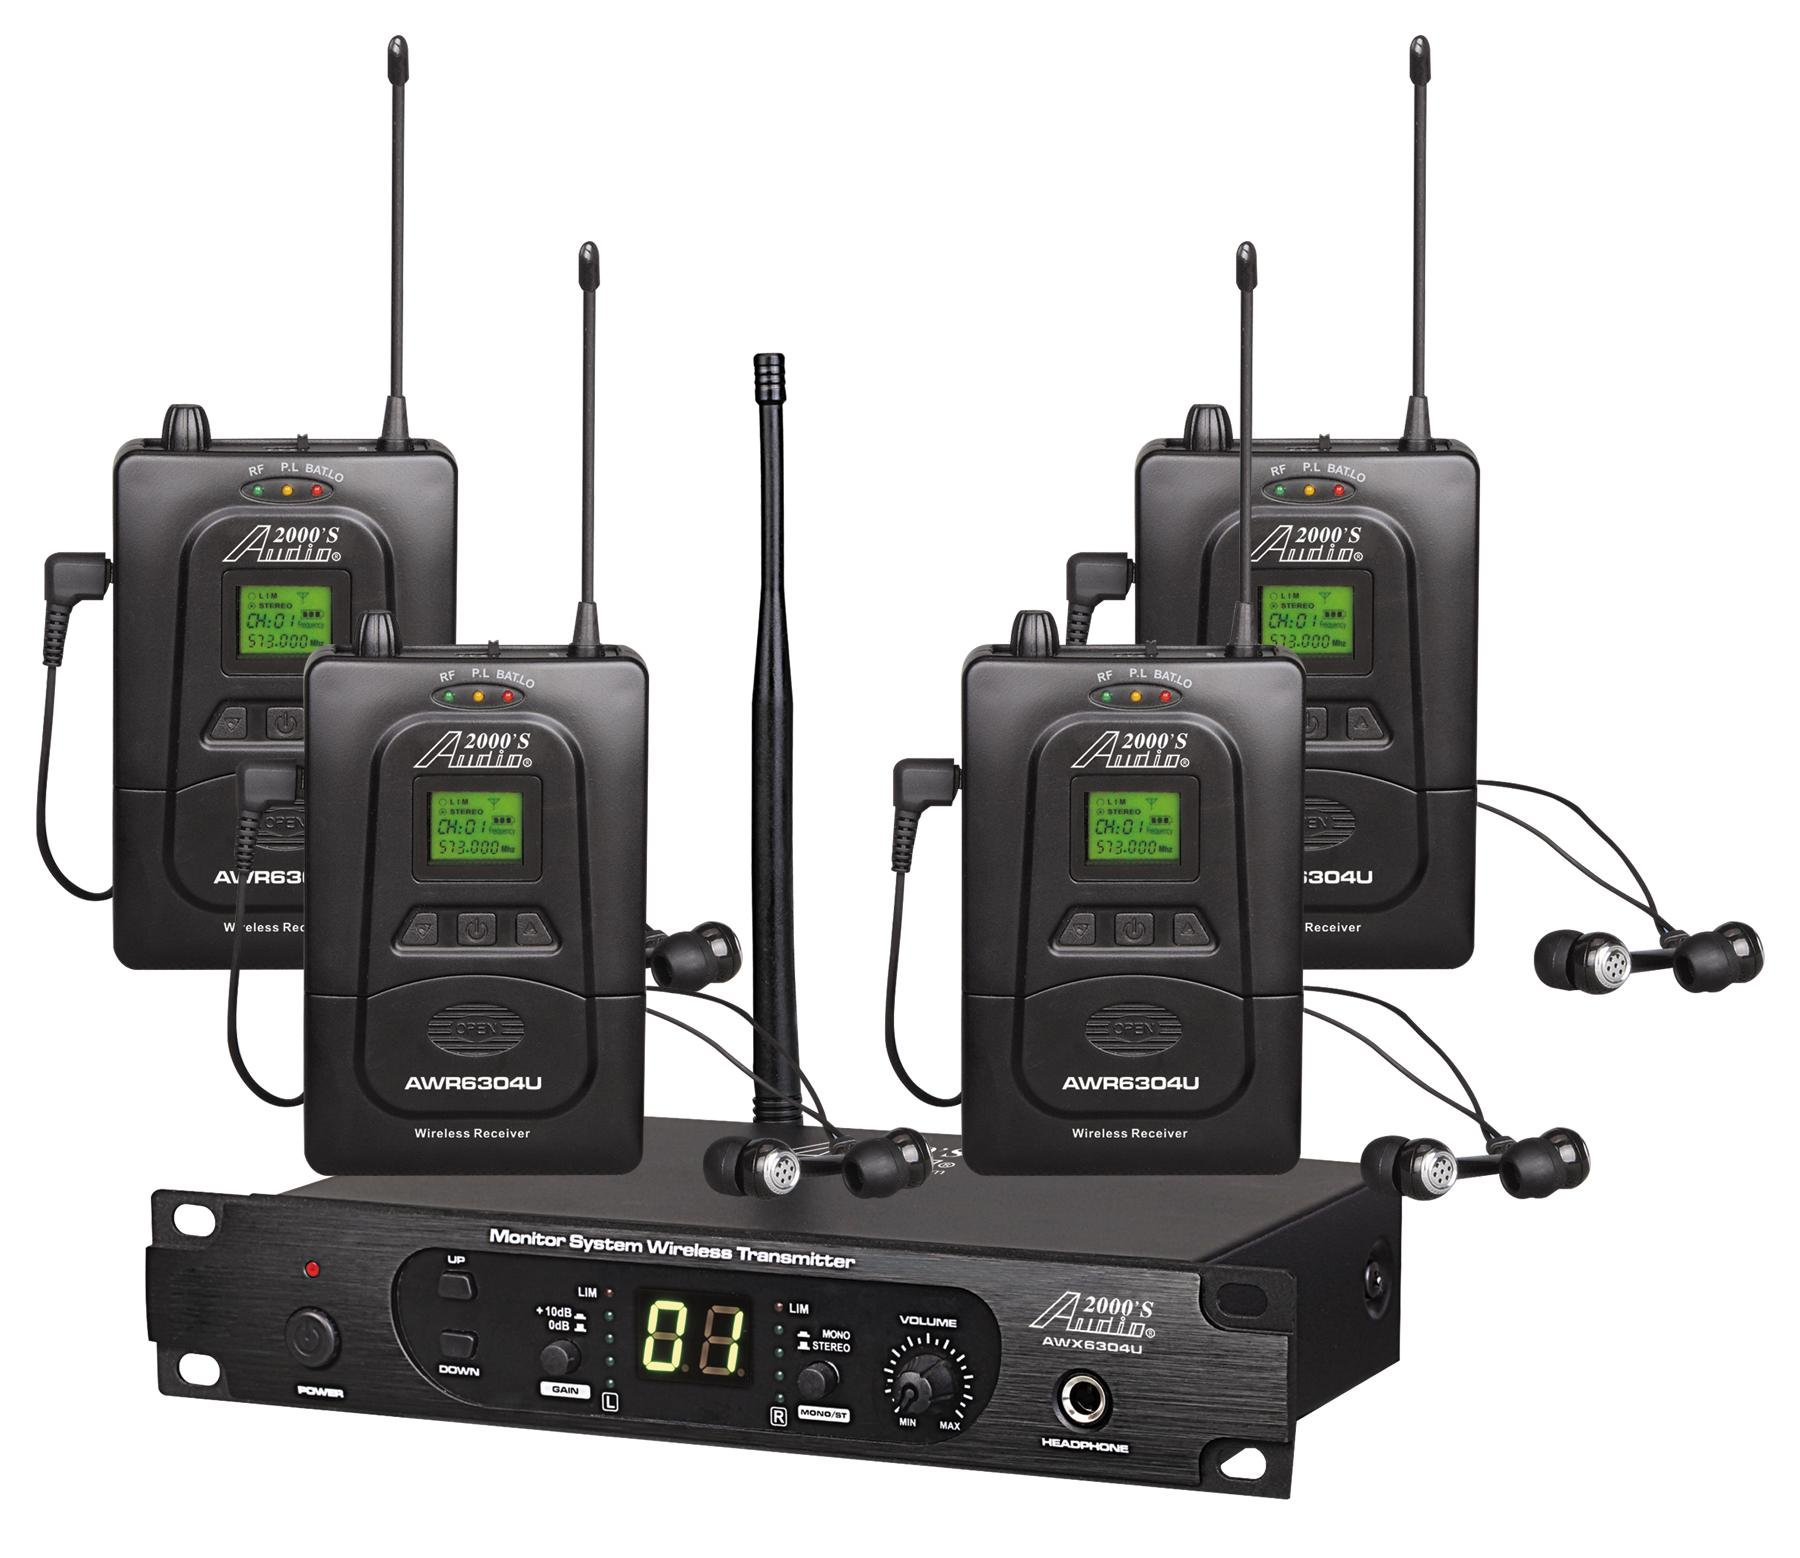 Audio2000'S In-Ear Audio Monitor System AWM6306U by Audio 2000S (Image #1)